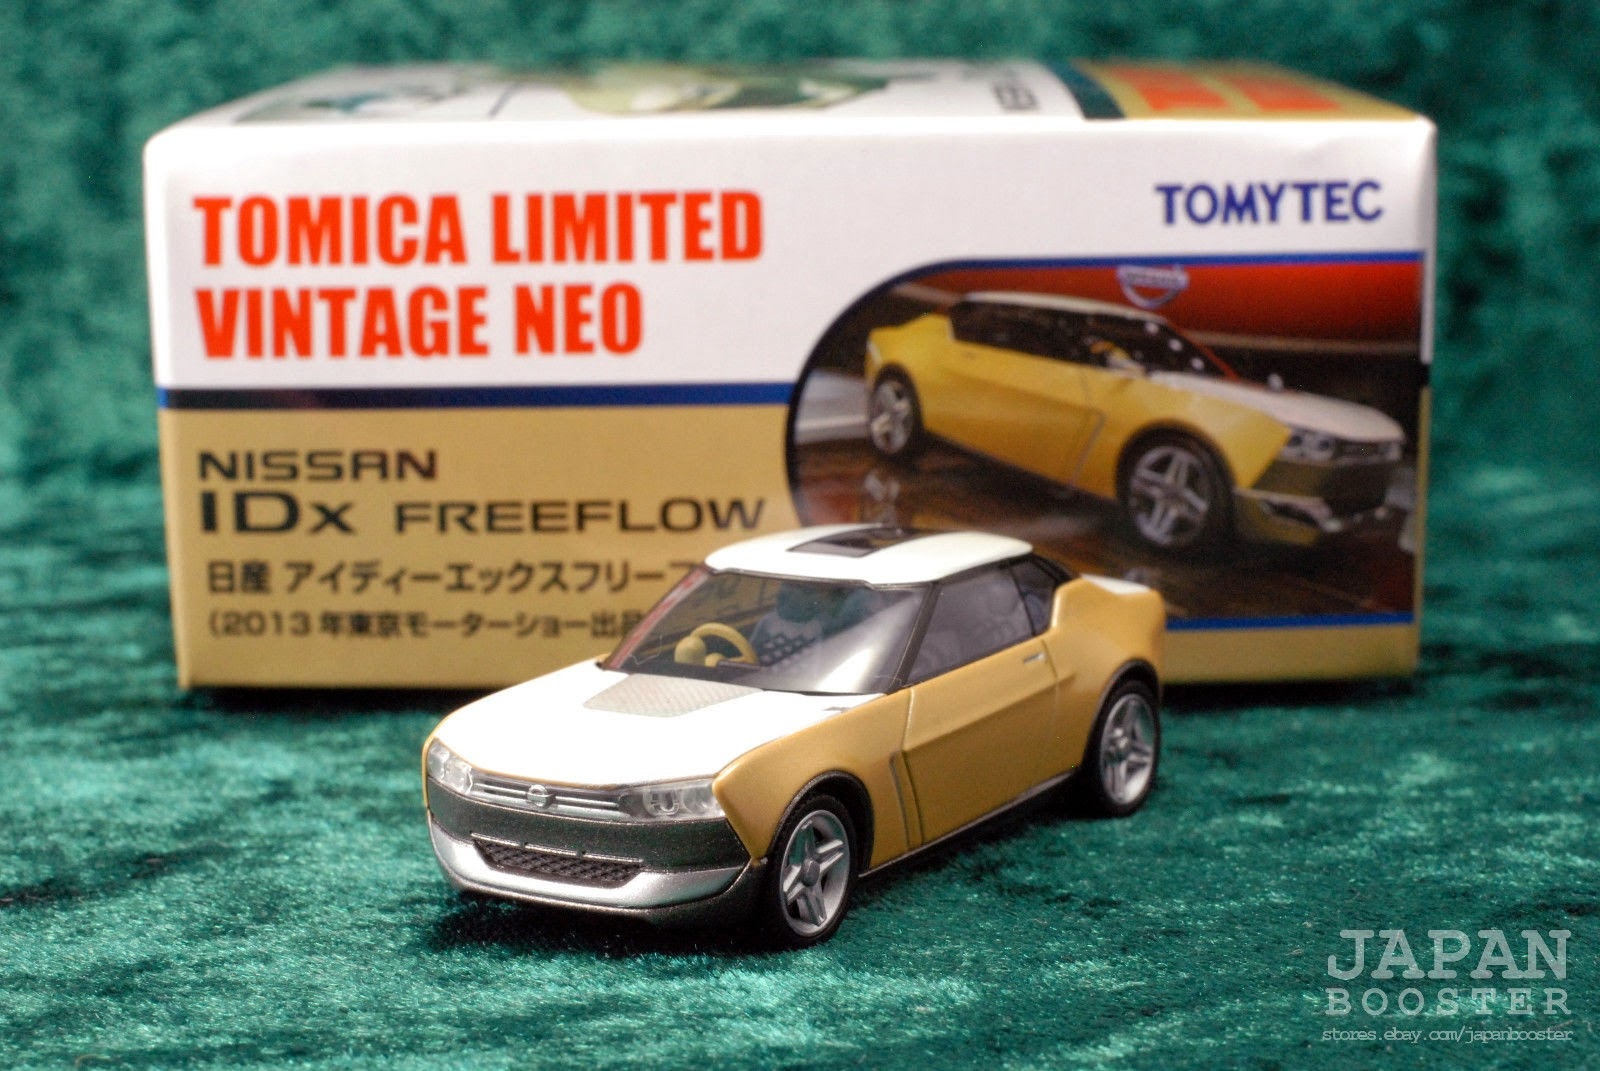 Surprise Tomica Limited Vintage Bre 510 Inspired Nissan Idx Nismo Is Now Available At Japan Booster Thelamleygroup